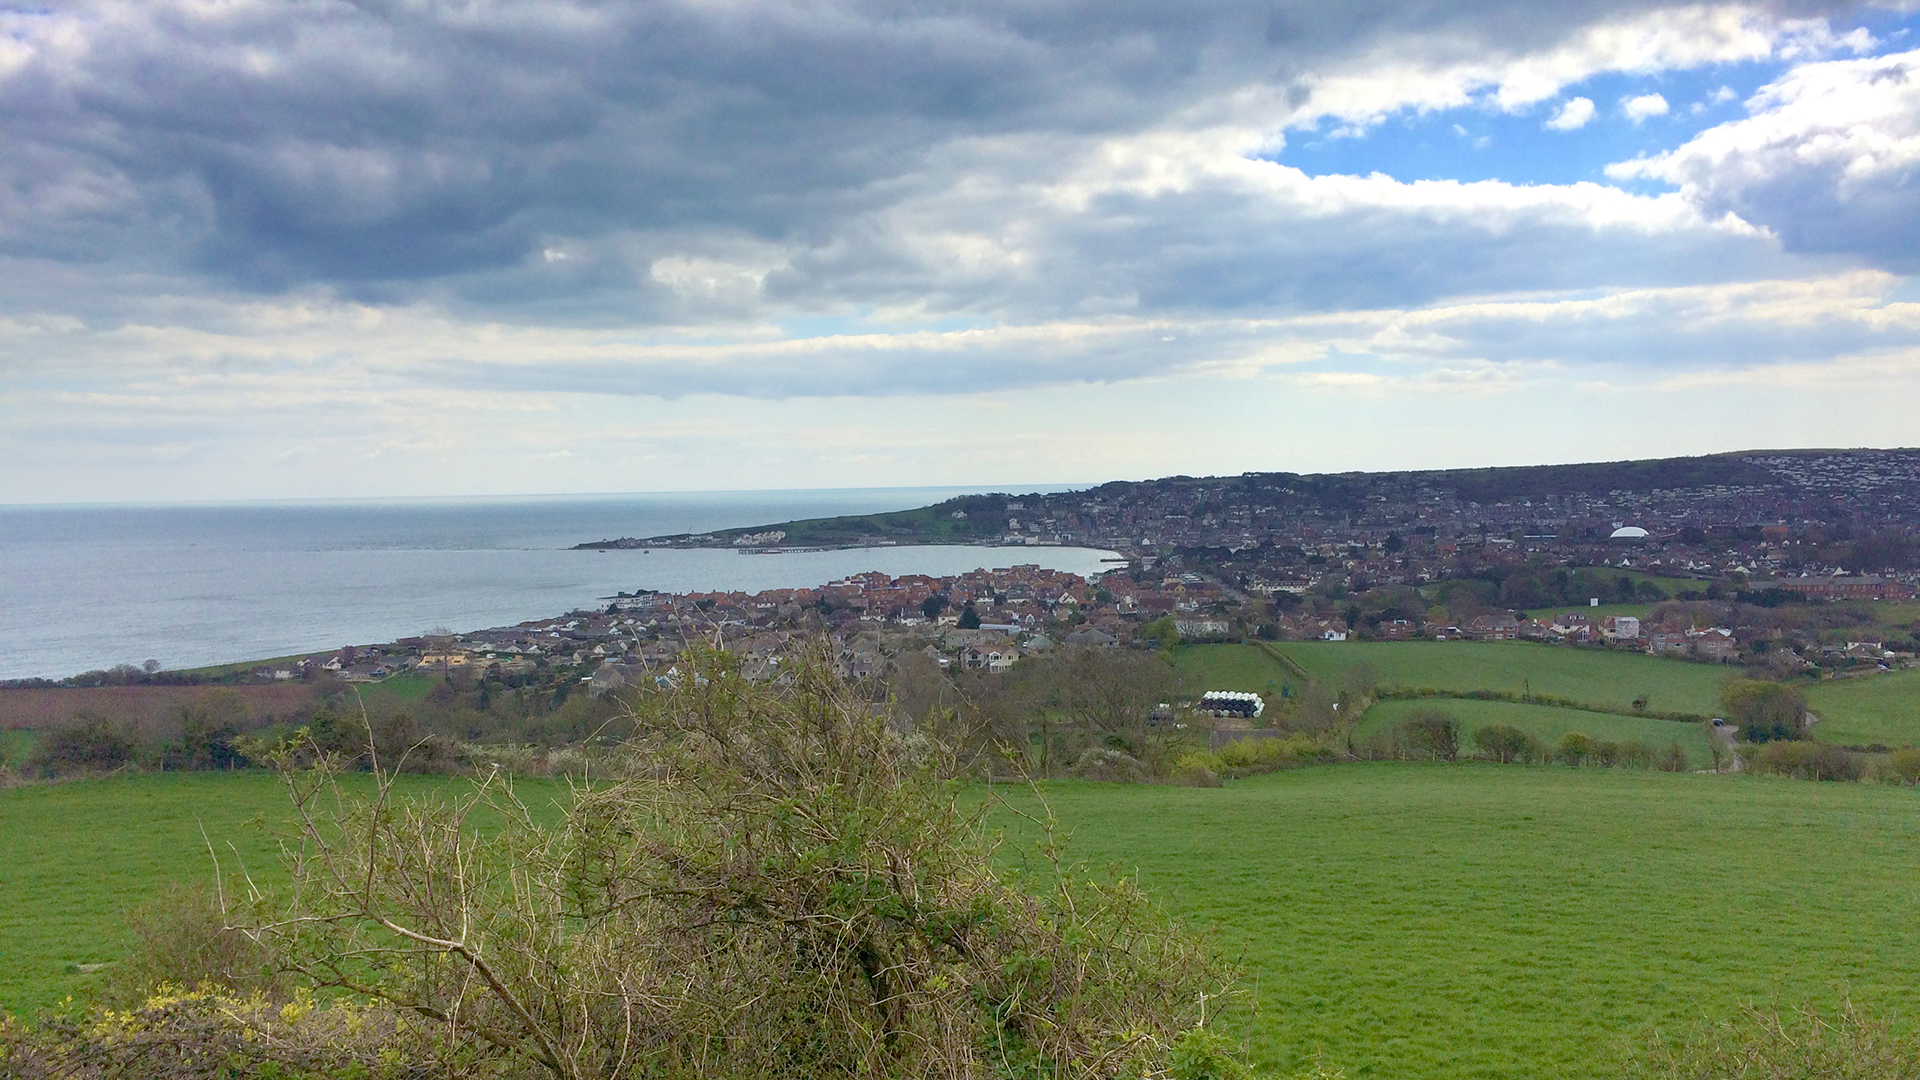 Looking our across Swanage in Dorset